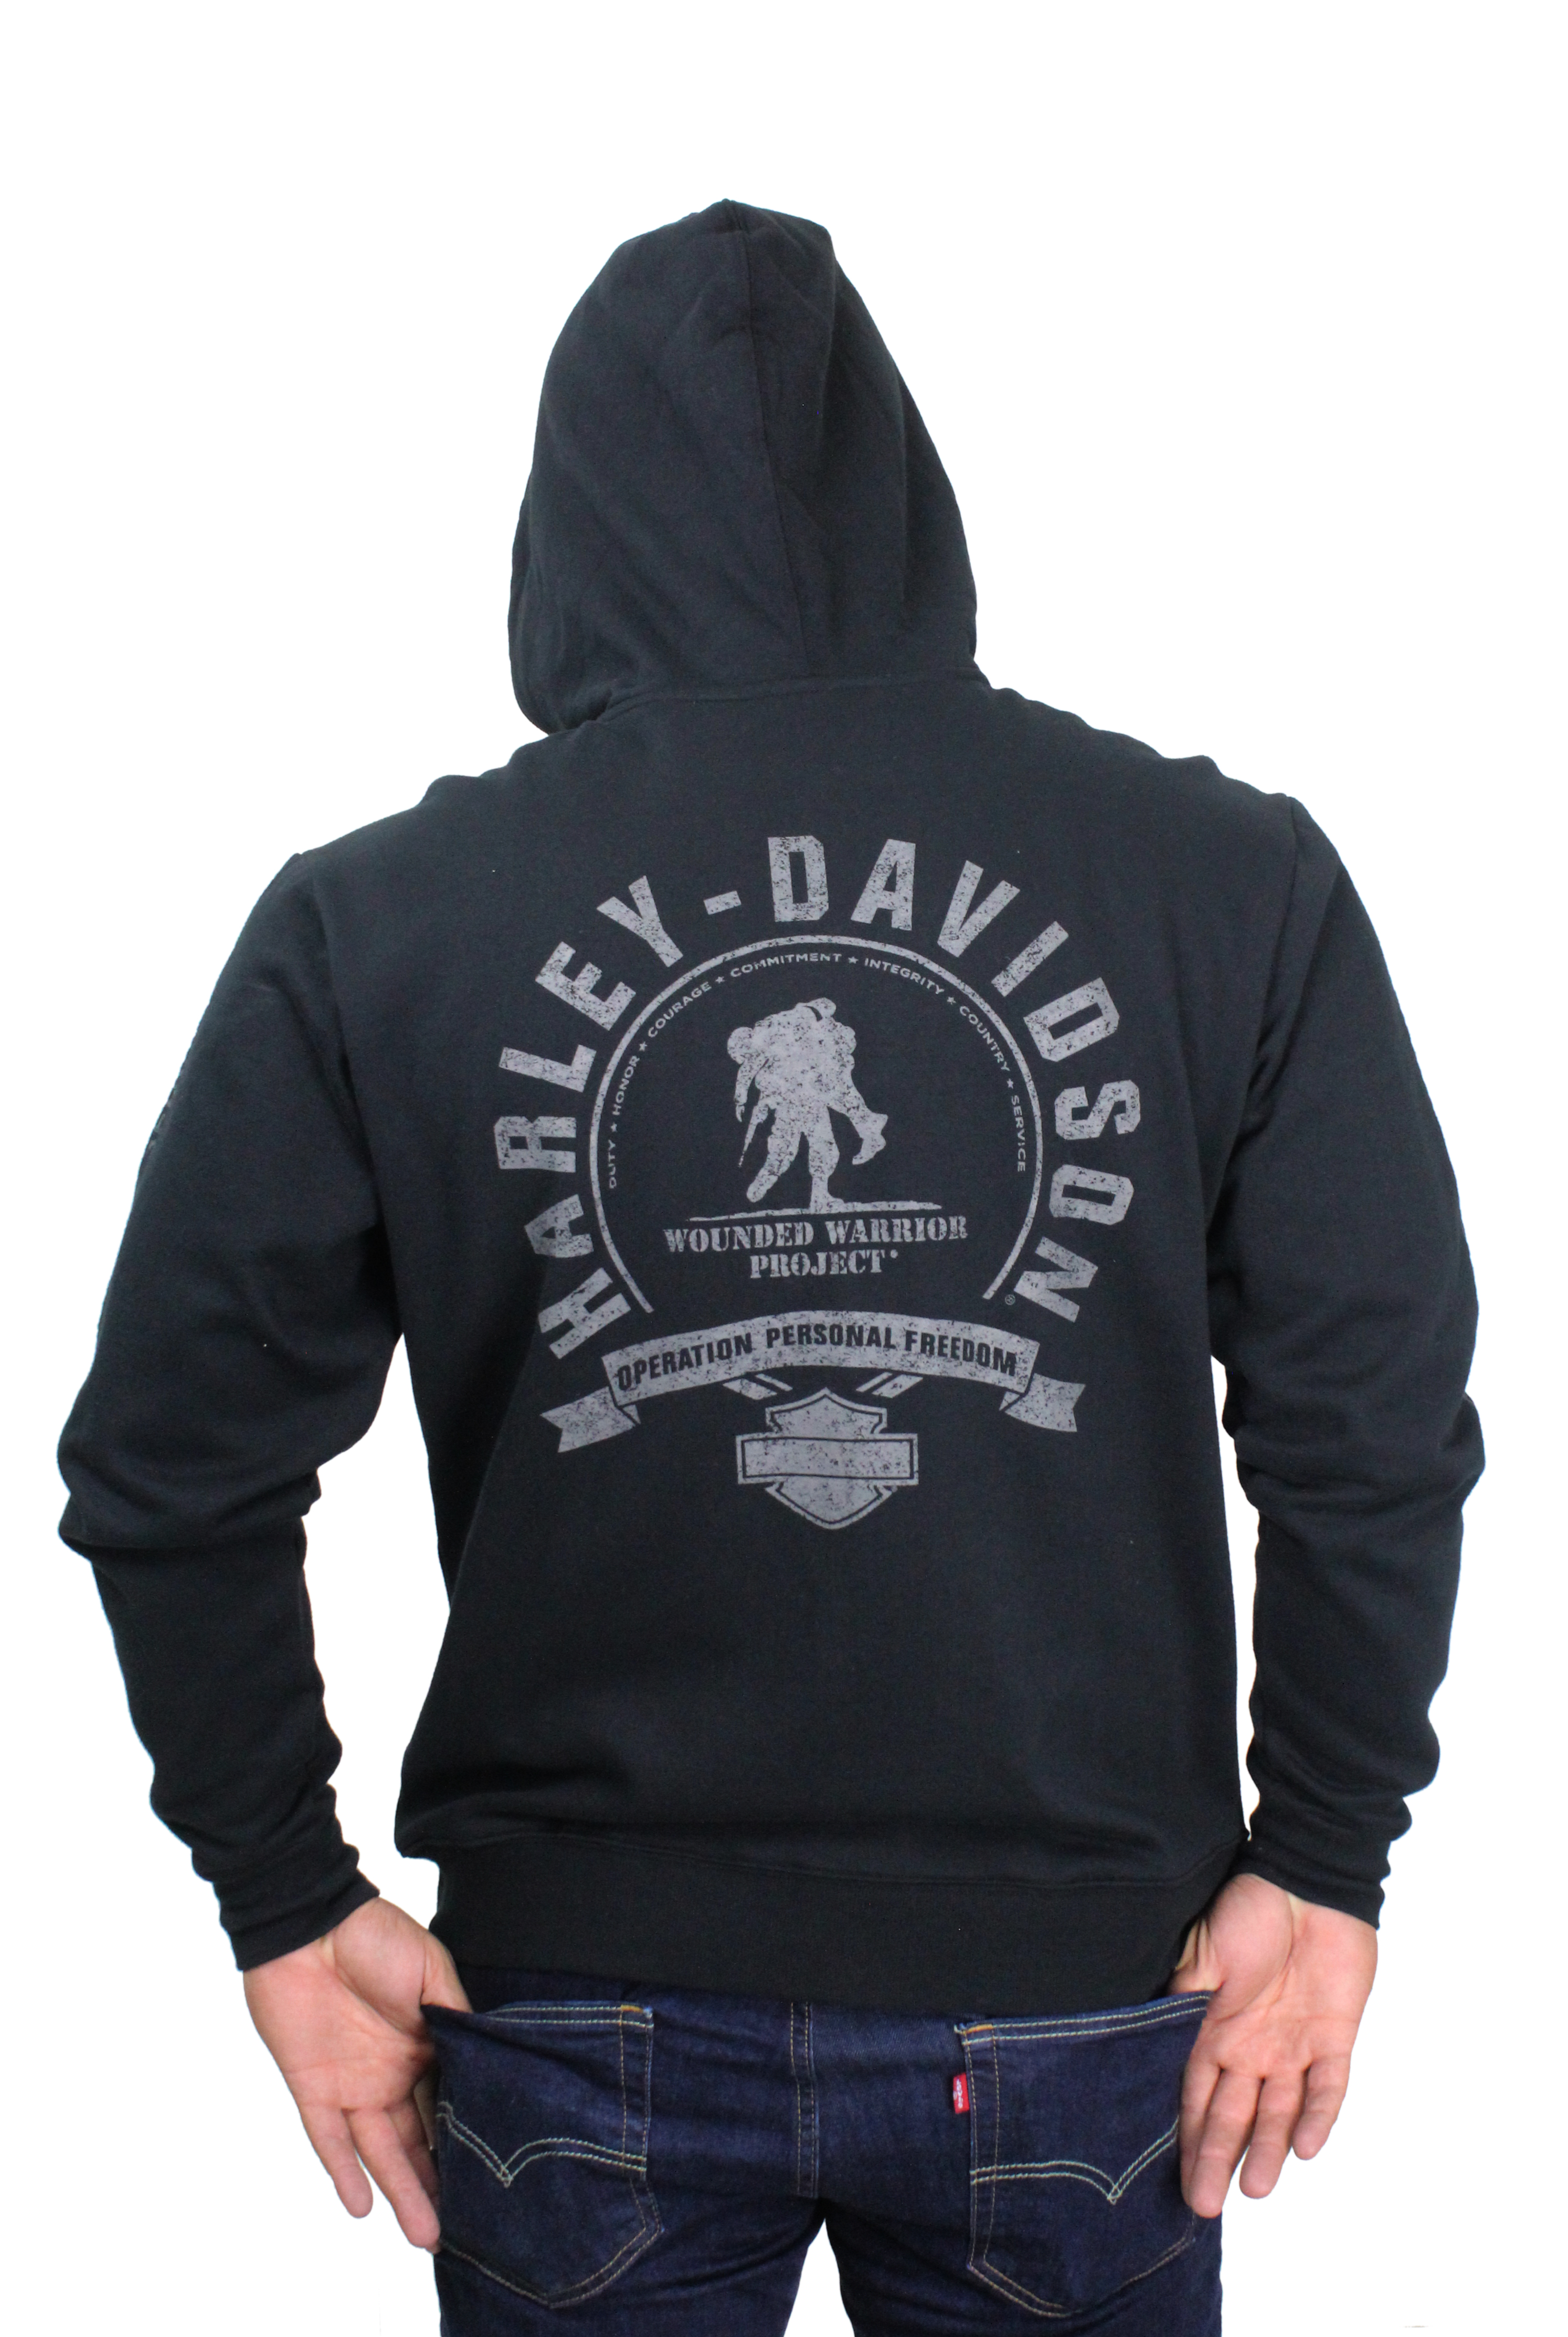 wounded warrior project hoodie The wounded warrior project collection helps create awareness and support the many ways we honor and empower wounded veterans when you purchase our harley-davidson wounded warrior stars & stripes hoodie, we donate 10% of the suggested retail price back to the wounded warrior project.